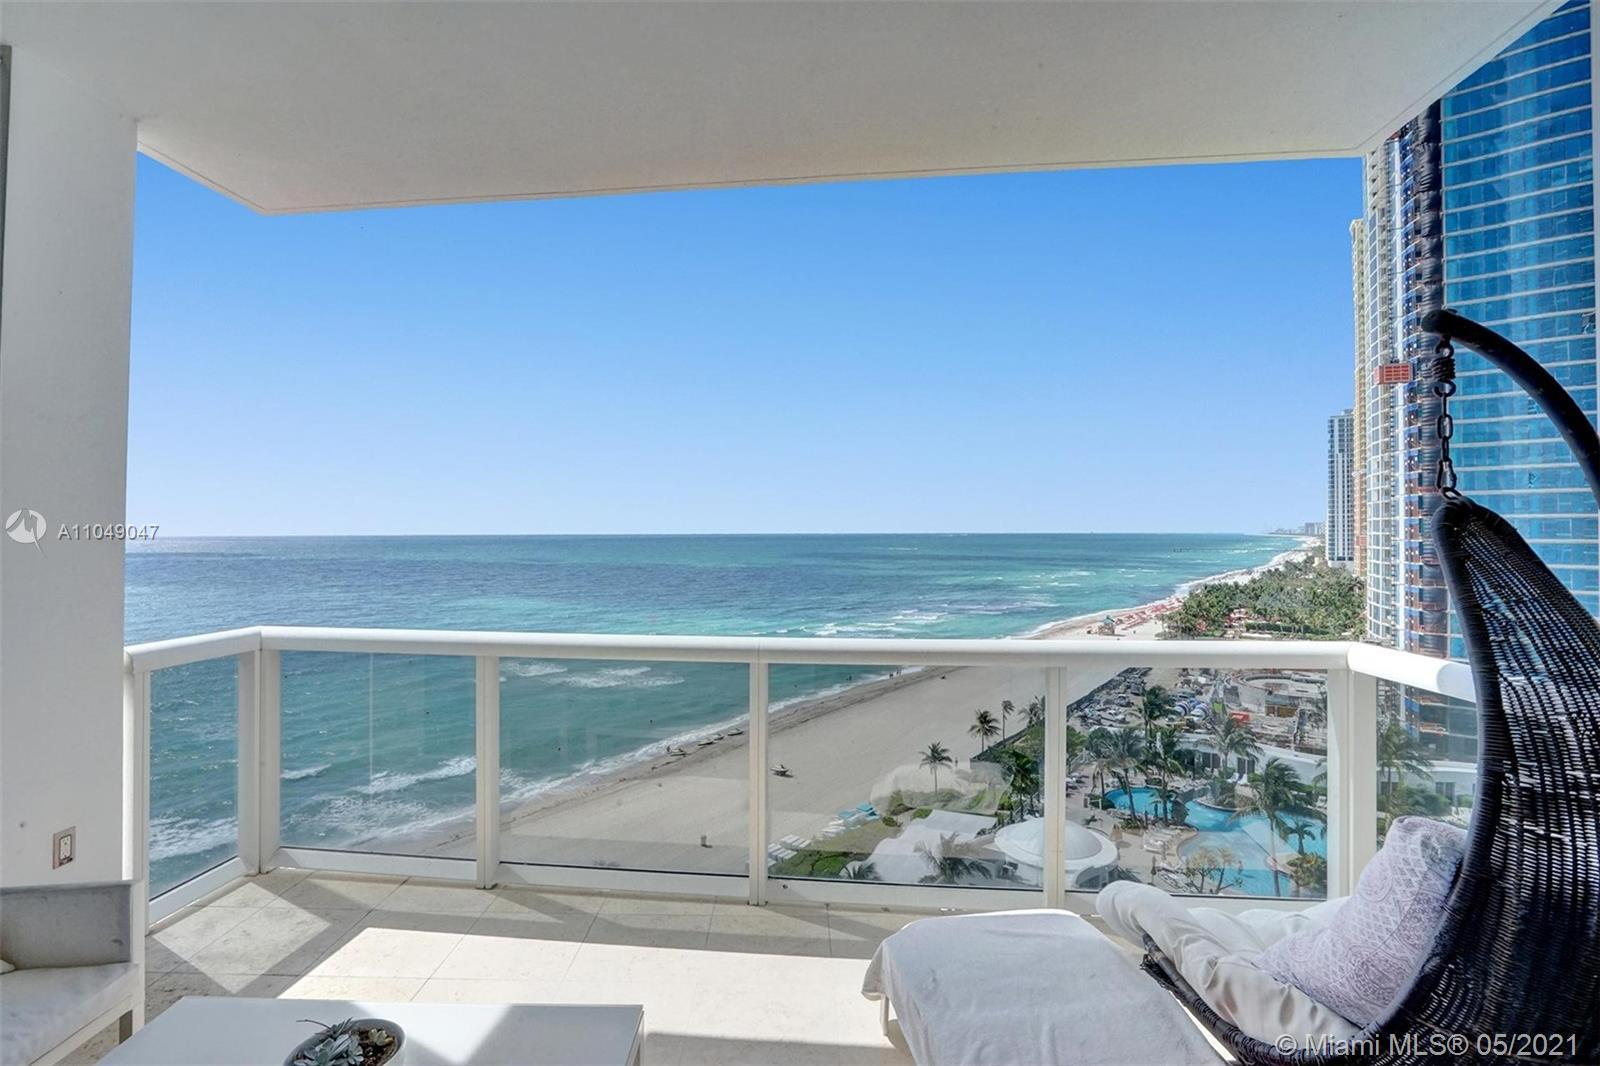 Fully remodeled and upgraded 2 bedroom 2,5 bath beautiful residence in Trump Palace offers ocean, ci